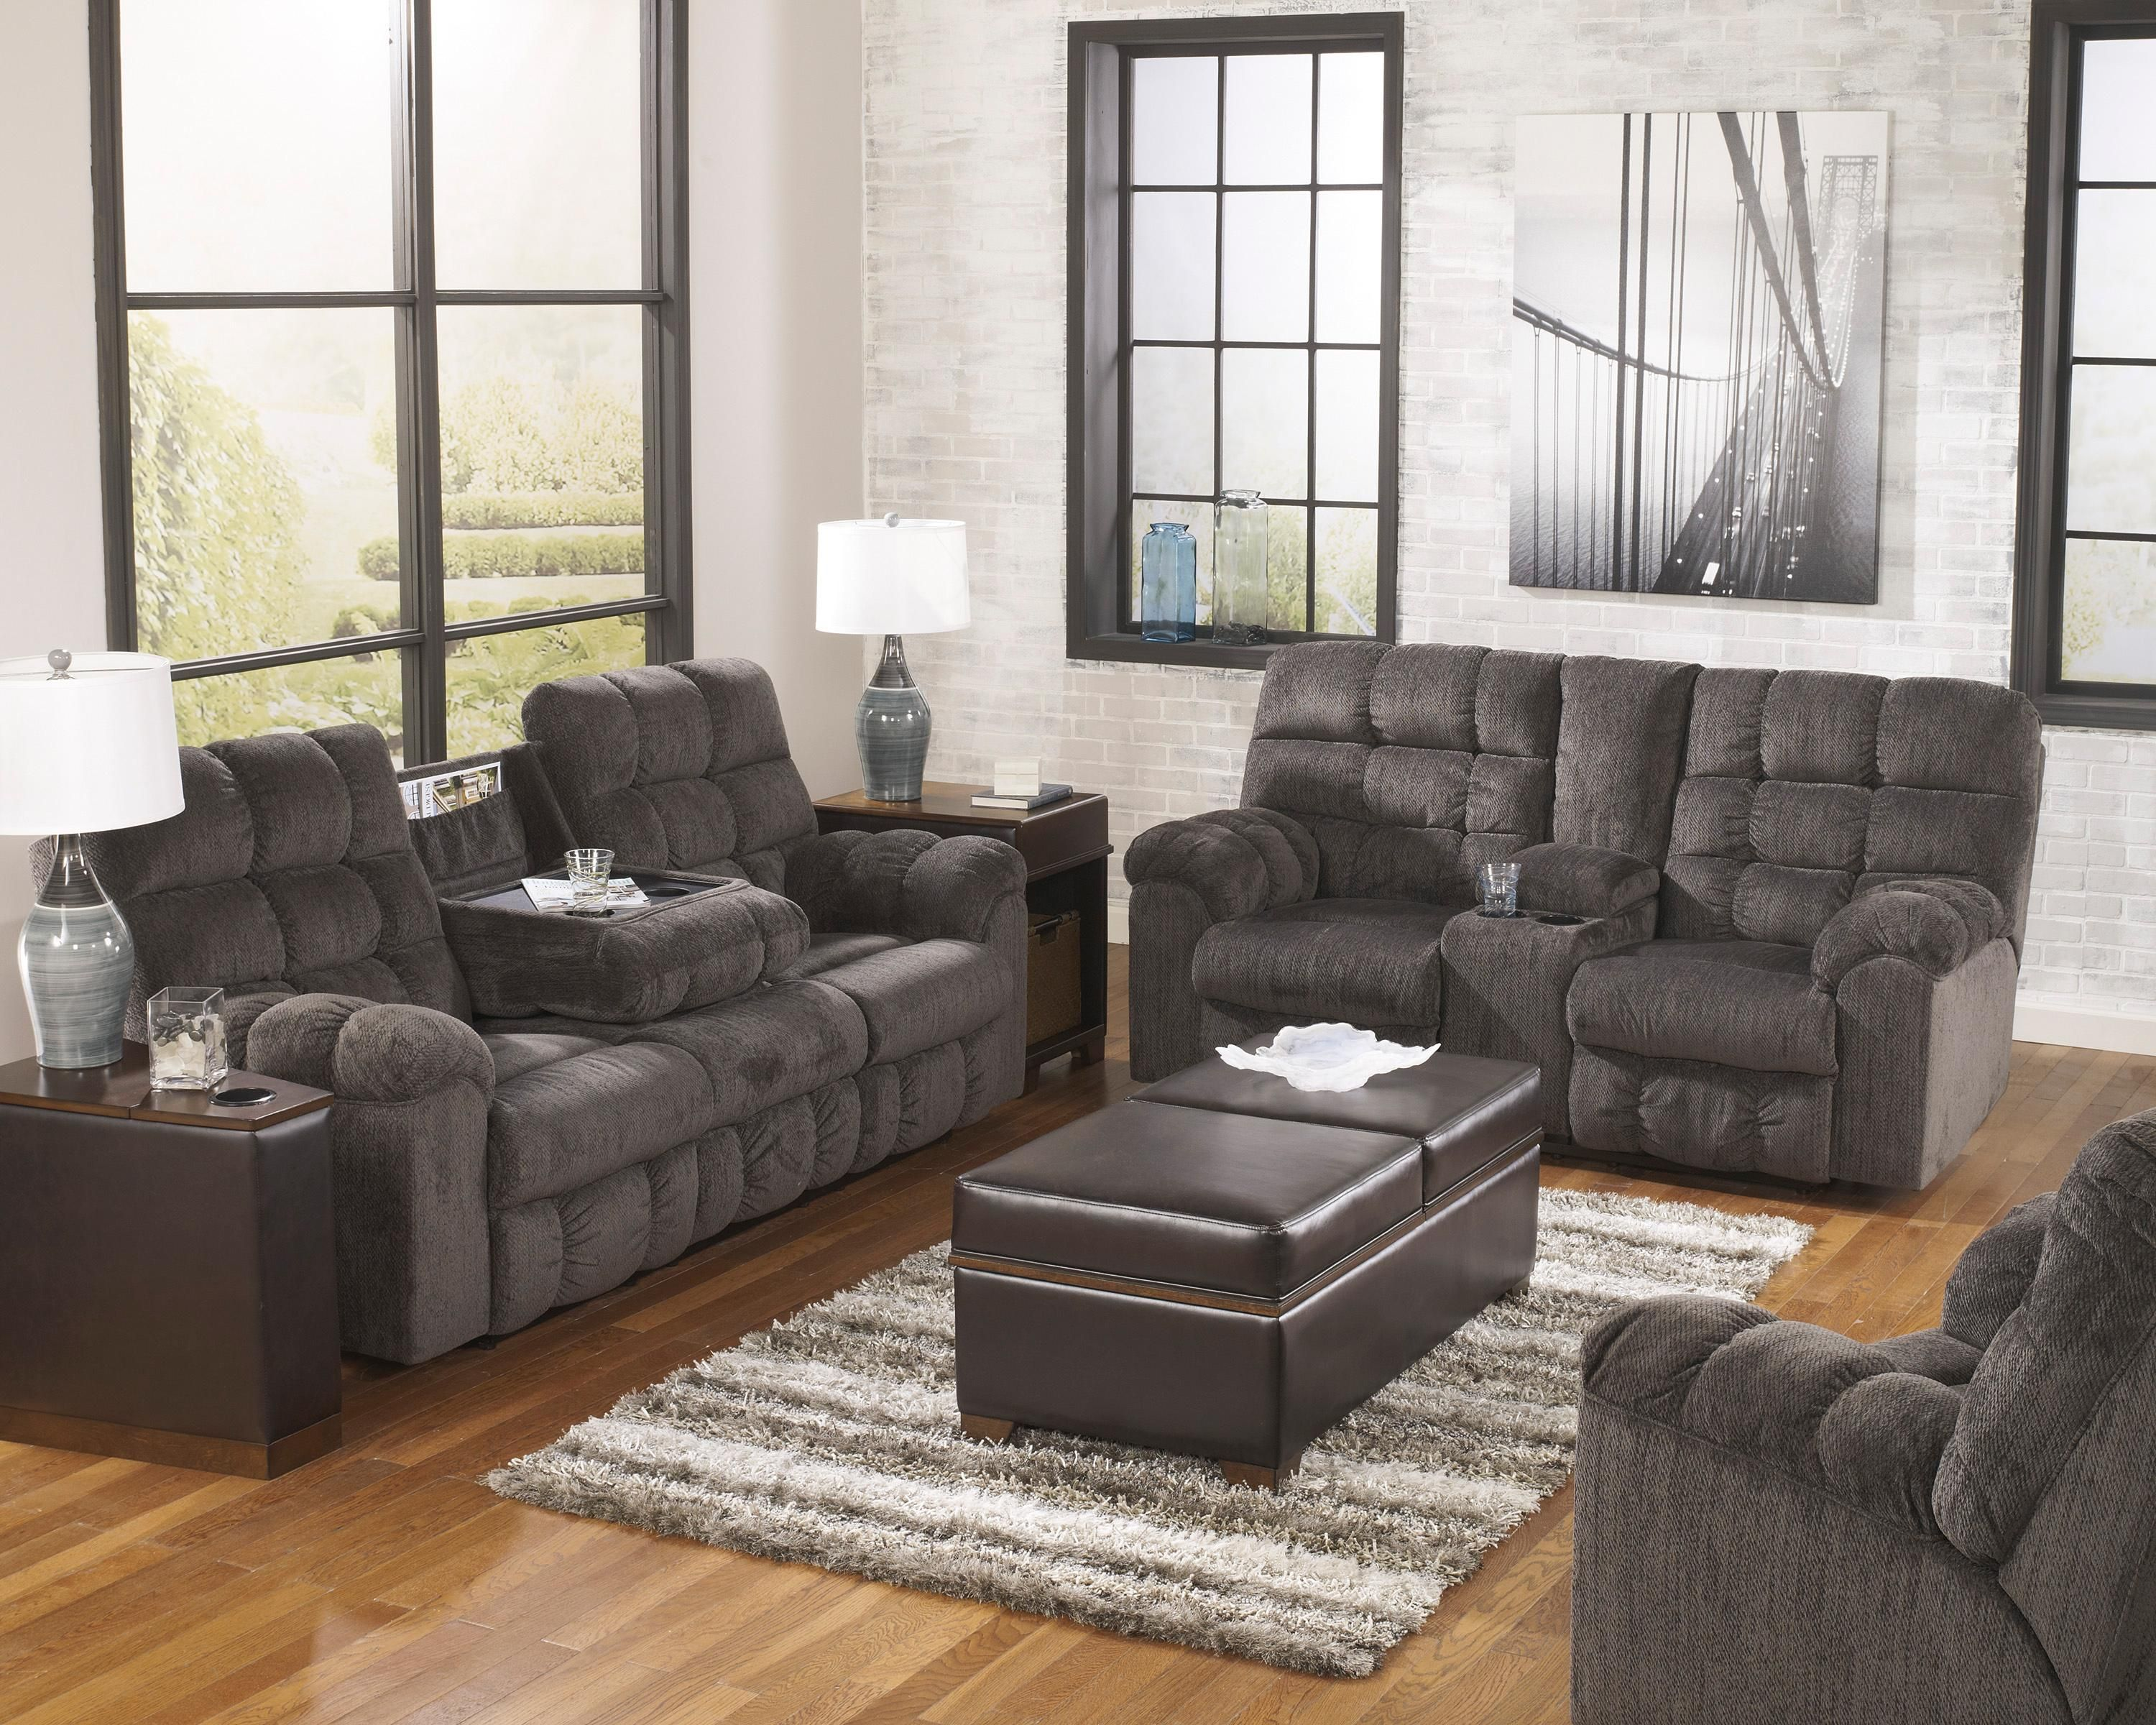 Signature Design By Ashley Acieona   Slate Reclining Living Room Group   Becku0027s  Furniture   Reclining